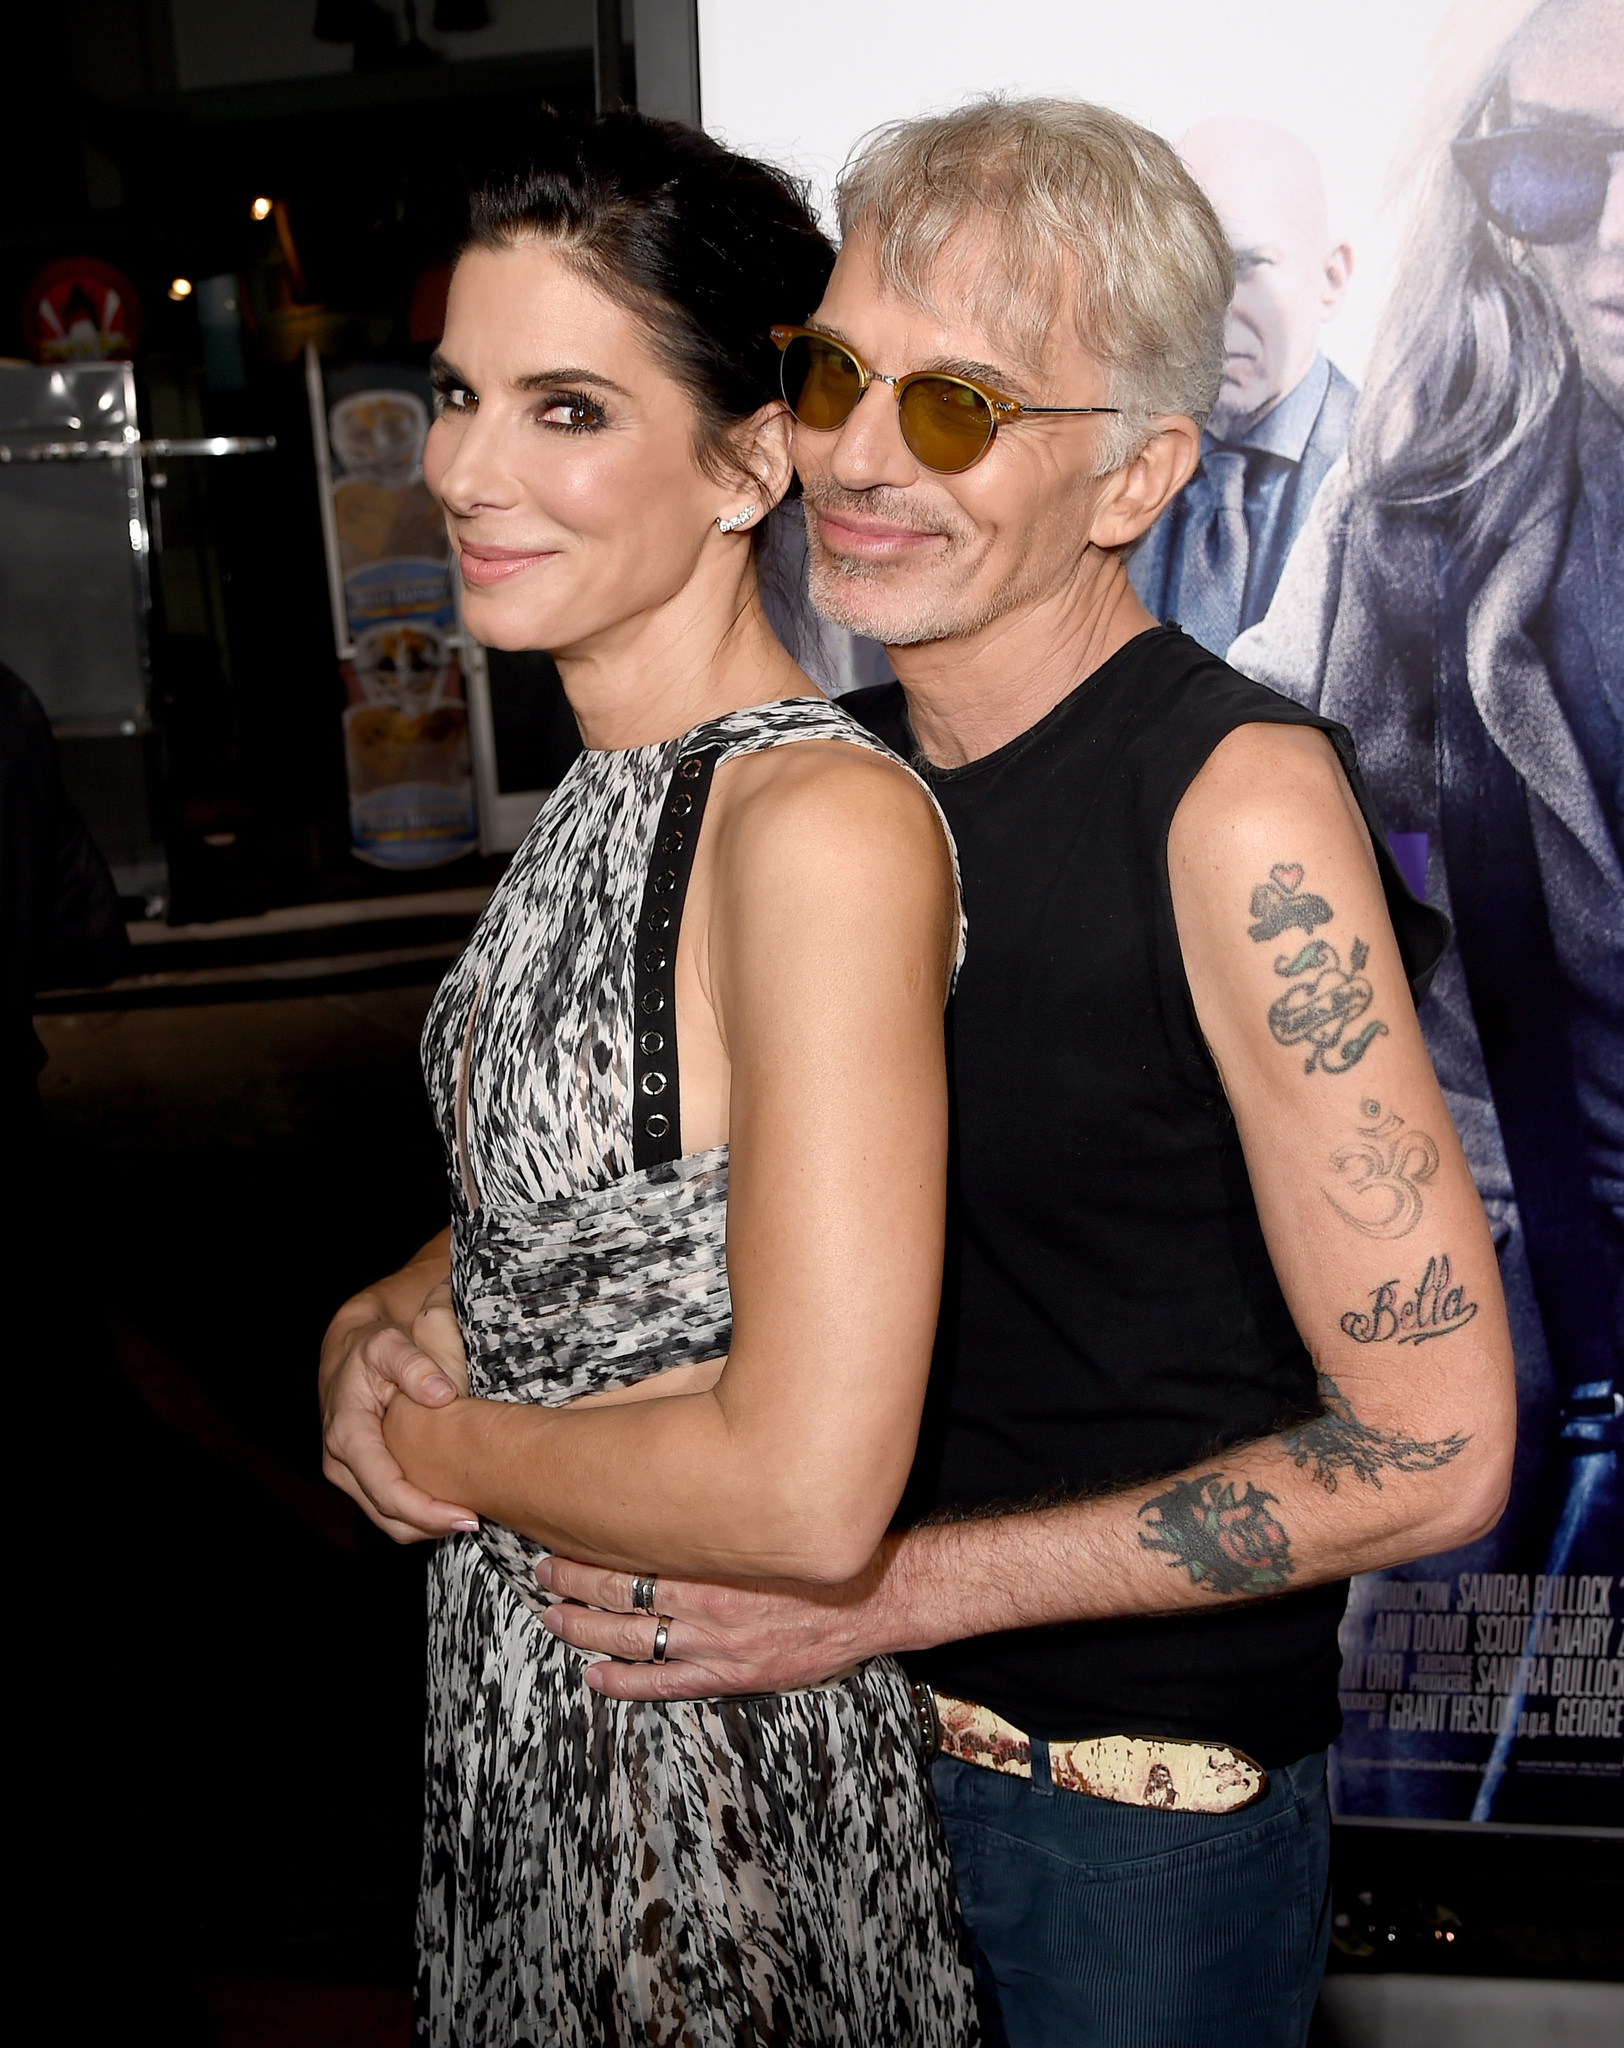 Sandra Bullock and Billy Bob Thornton at an event for Our Brand Is Crisis (2015)